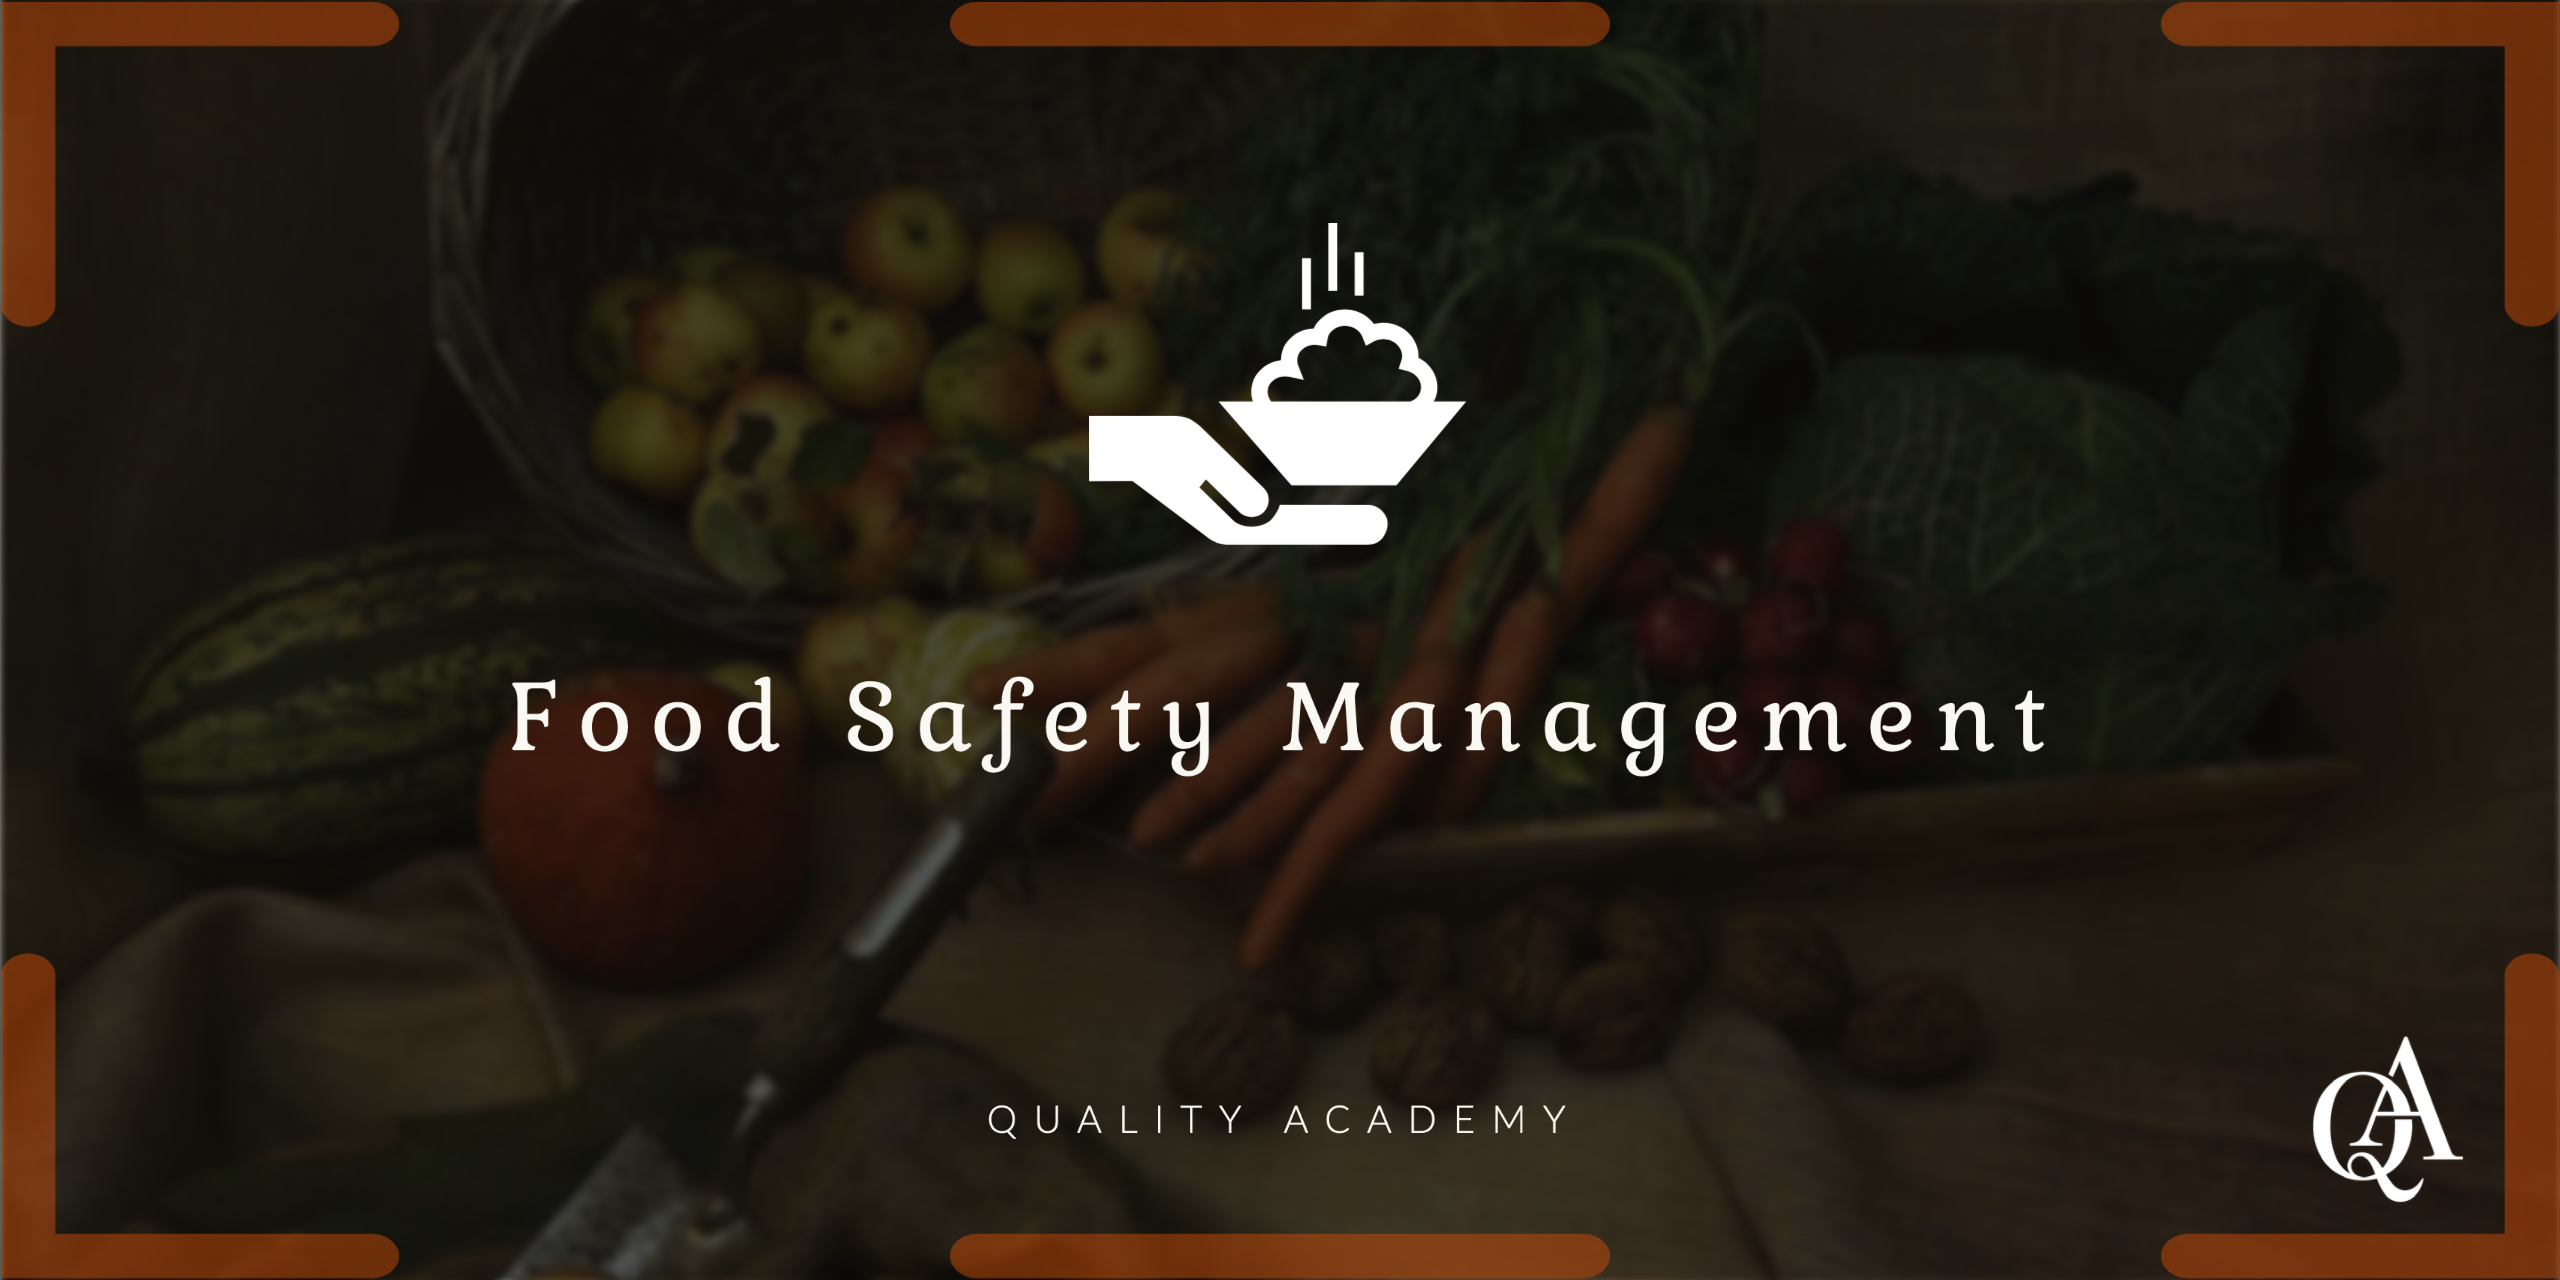 Food Safety Management courses